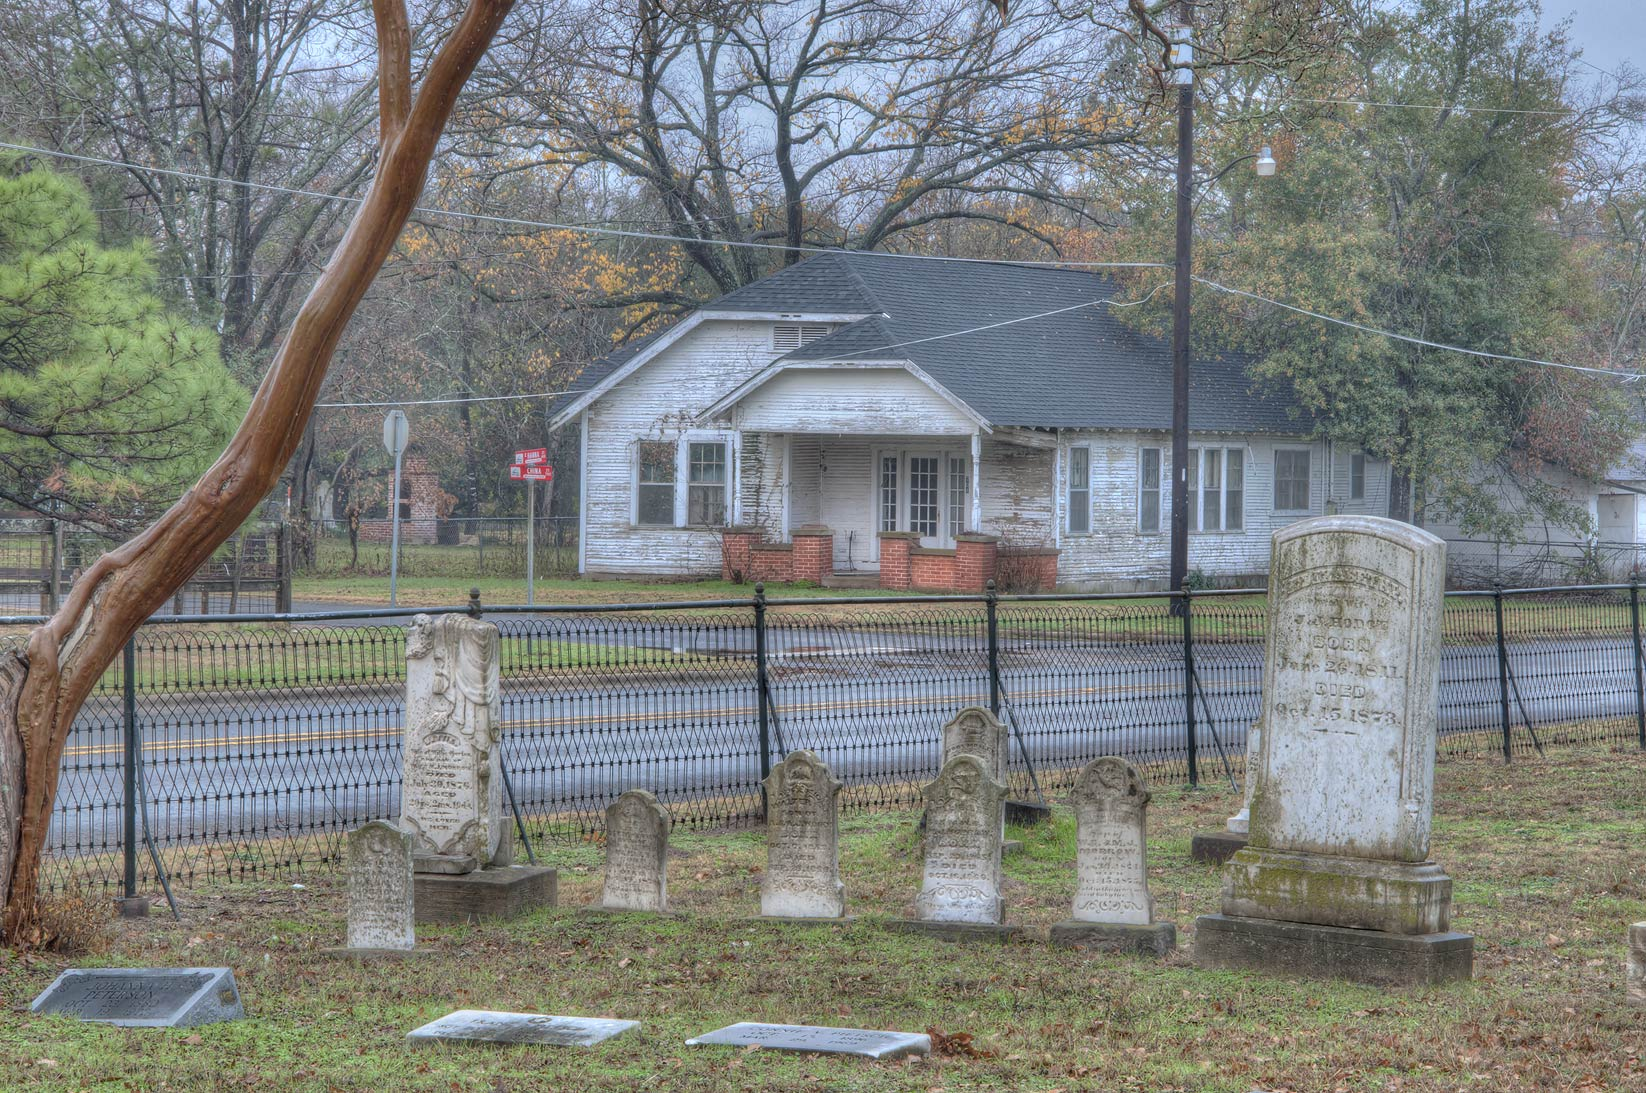 Tombs of Calvert Cemetery. Calvert, Texas